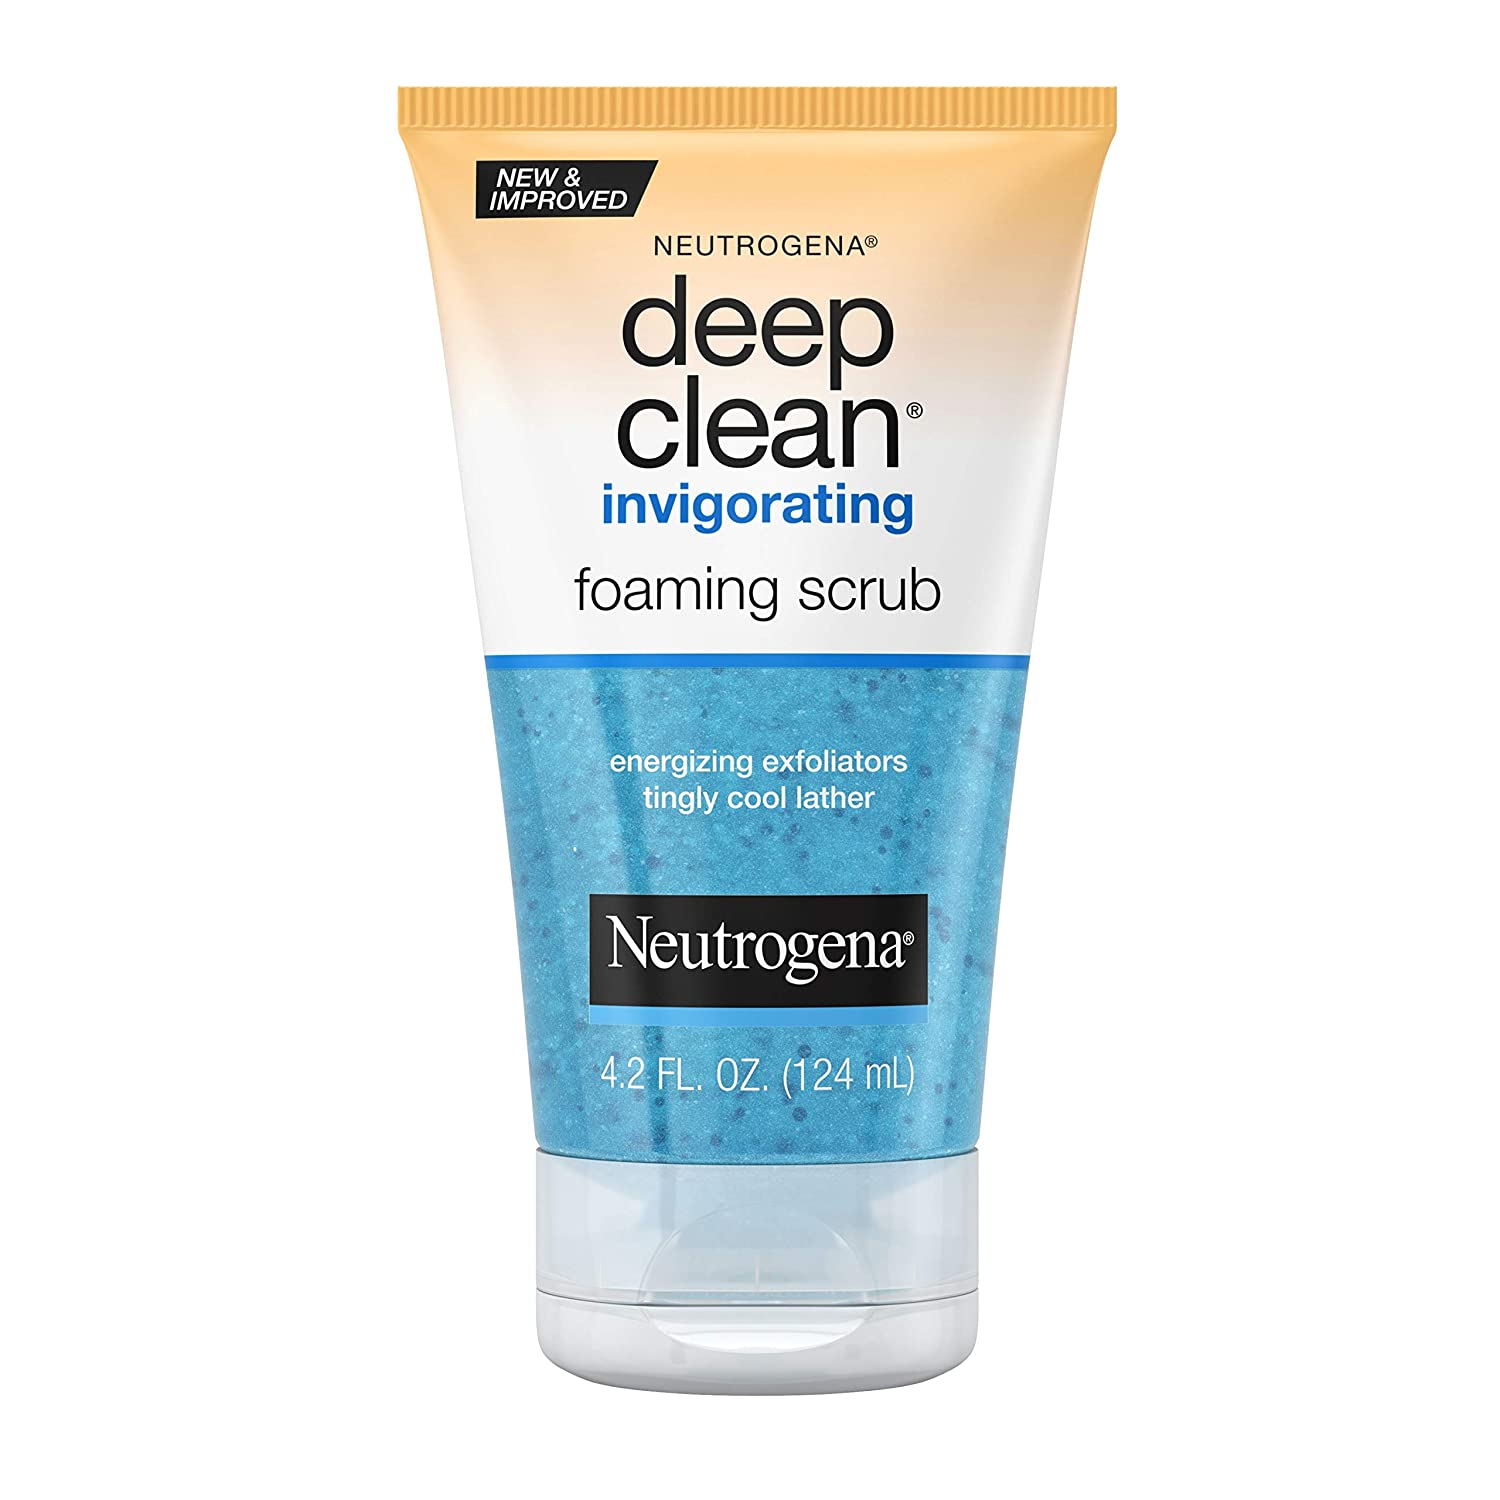 Neutrogena Deep Clean Invigorating Foaming Facial Scrub with Glycerin, Cooling & Exfoliating Gel Face Wash to Remove Dirt, Oil & Makeup, 4.2 fl. oz: Beauty